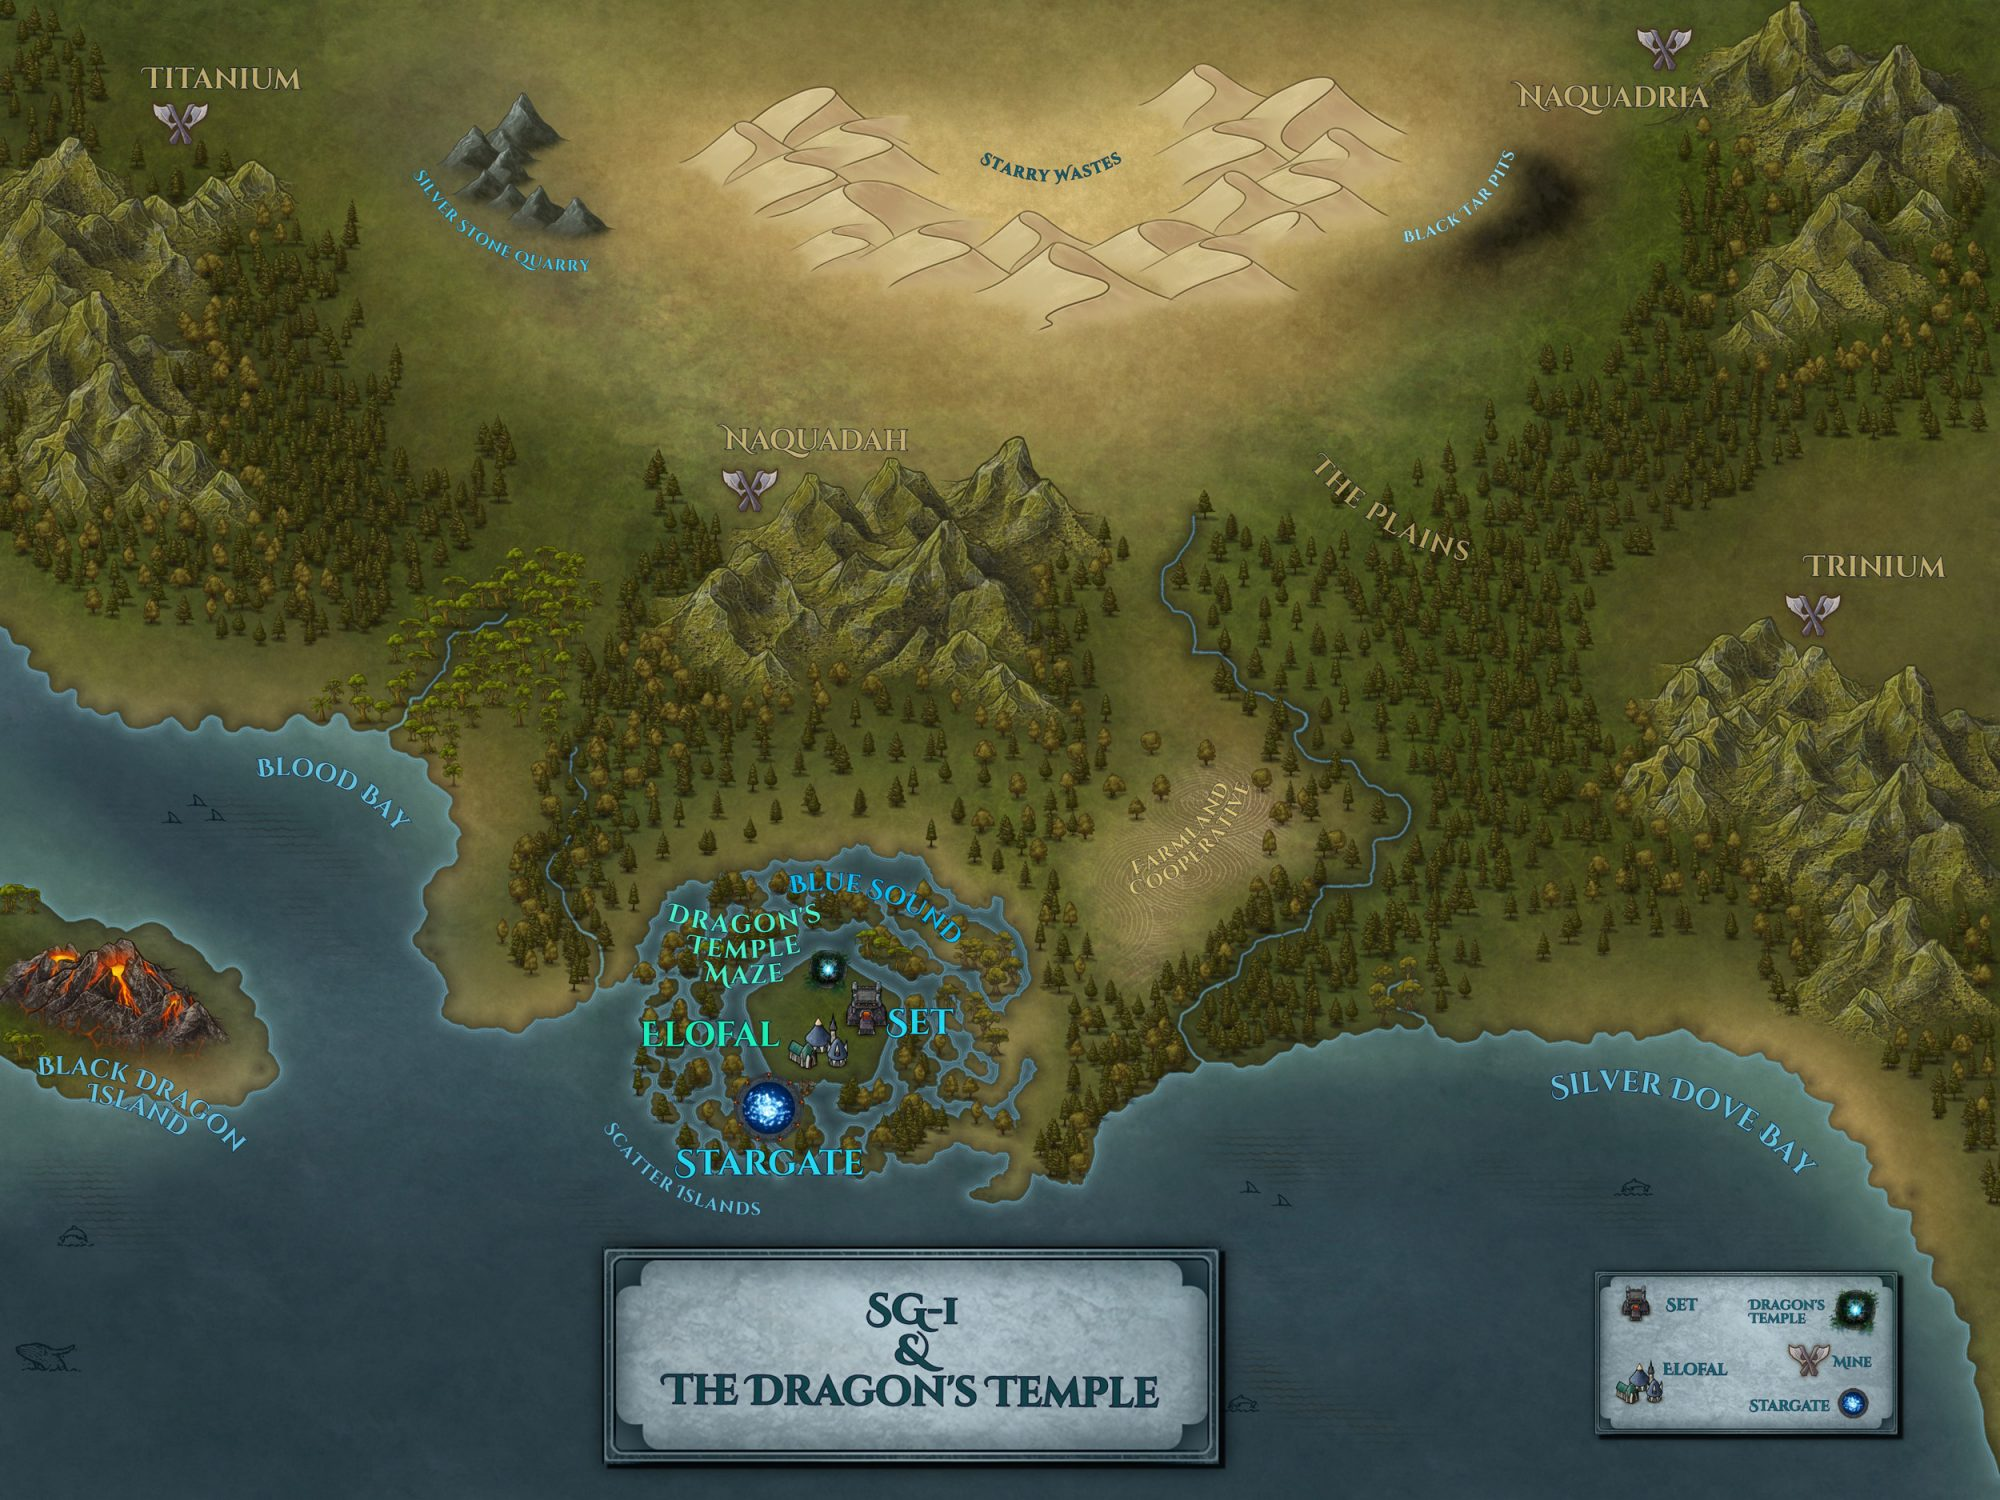 The final map of the Dragon's Temple.